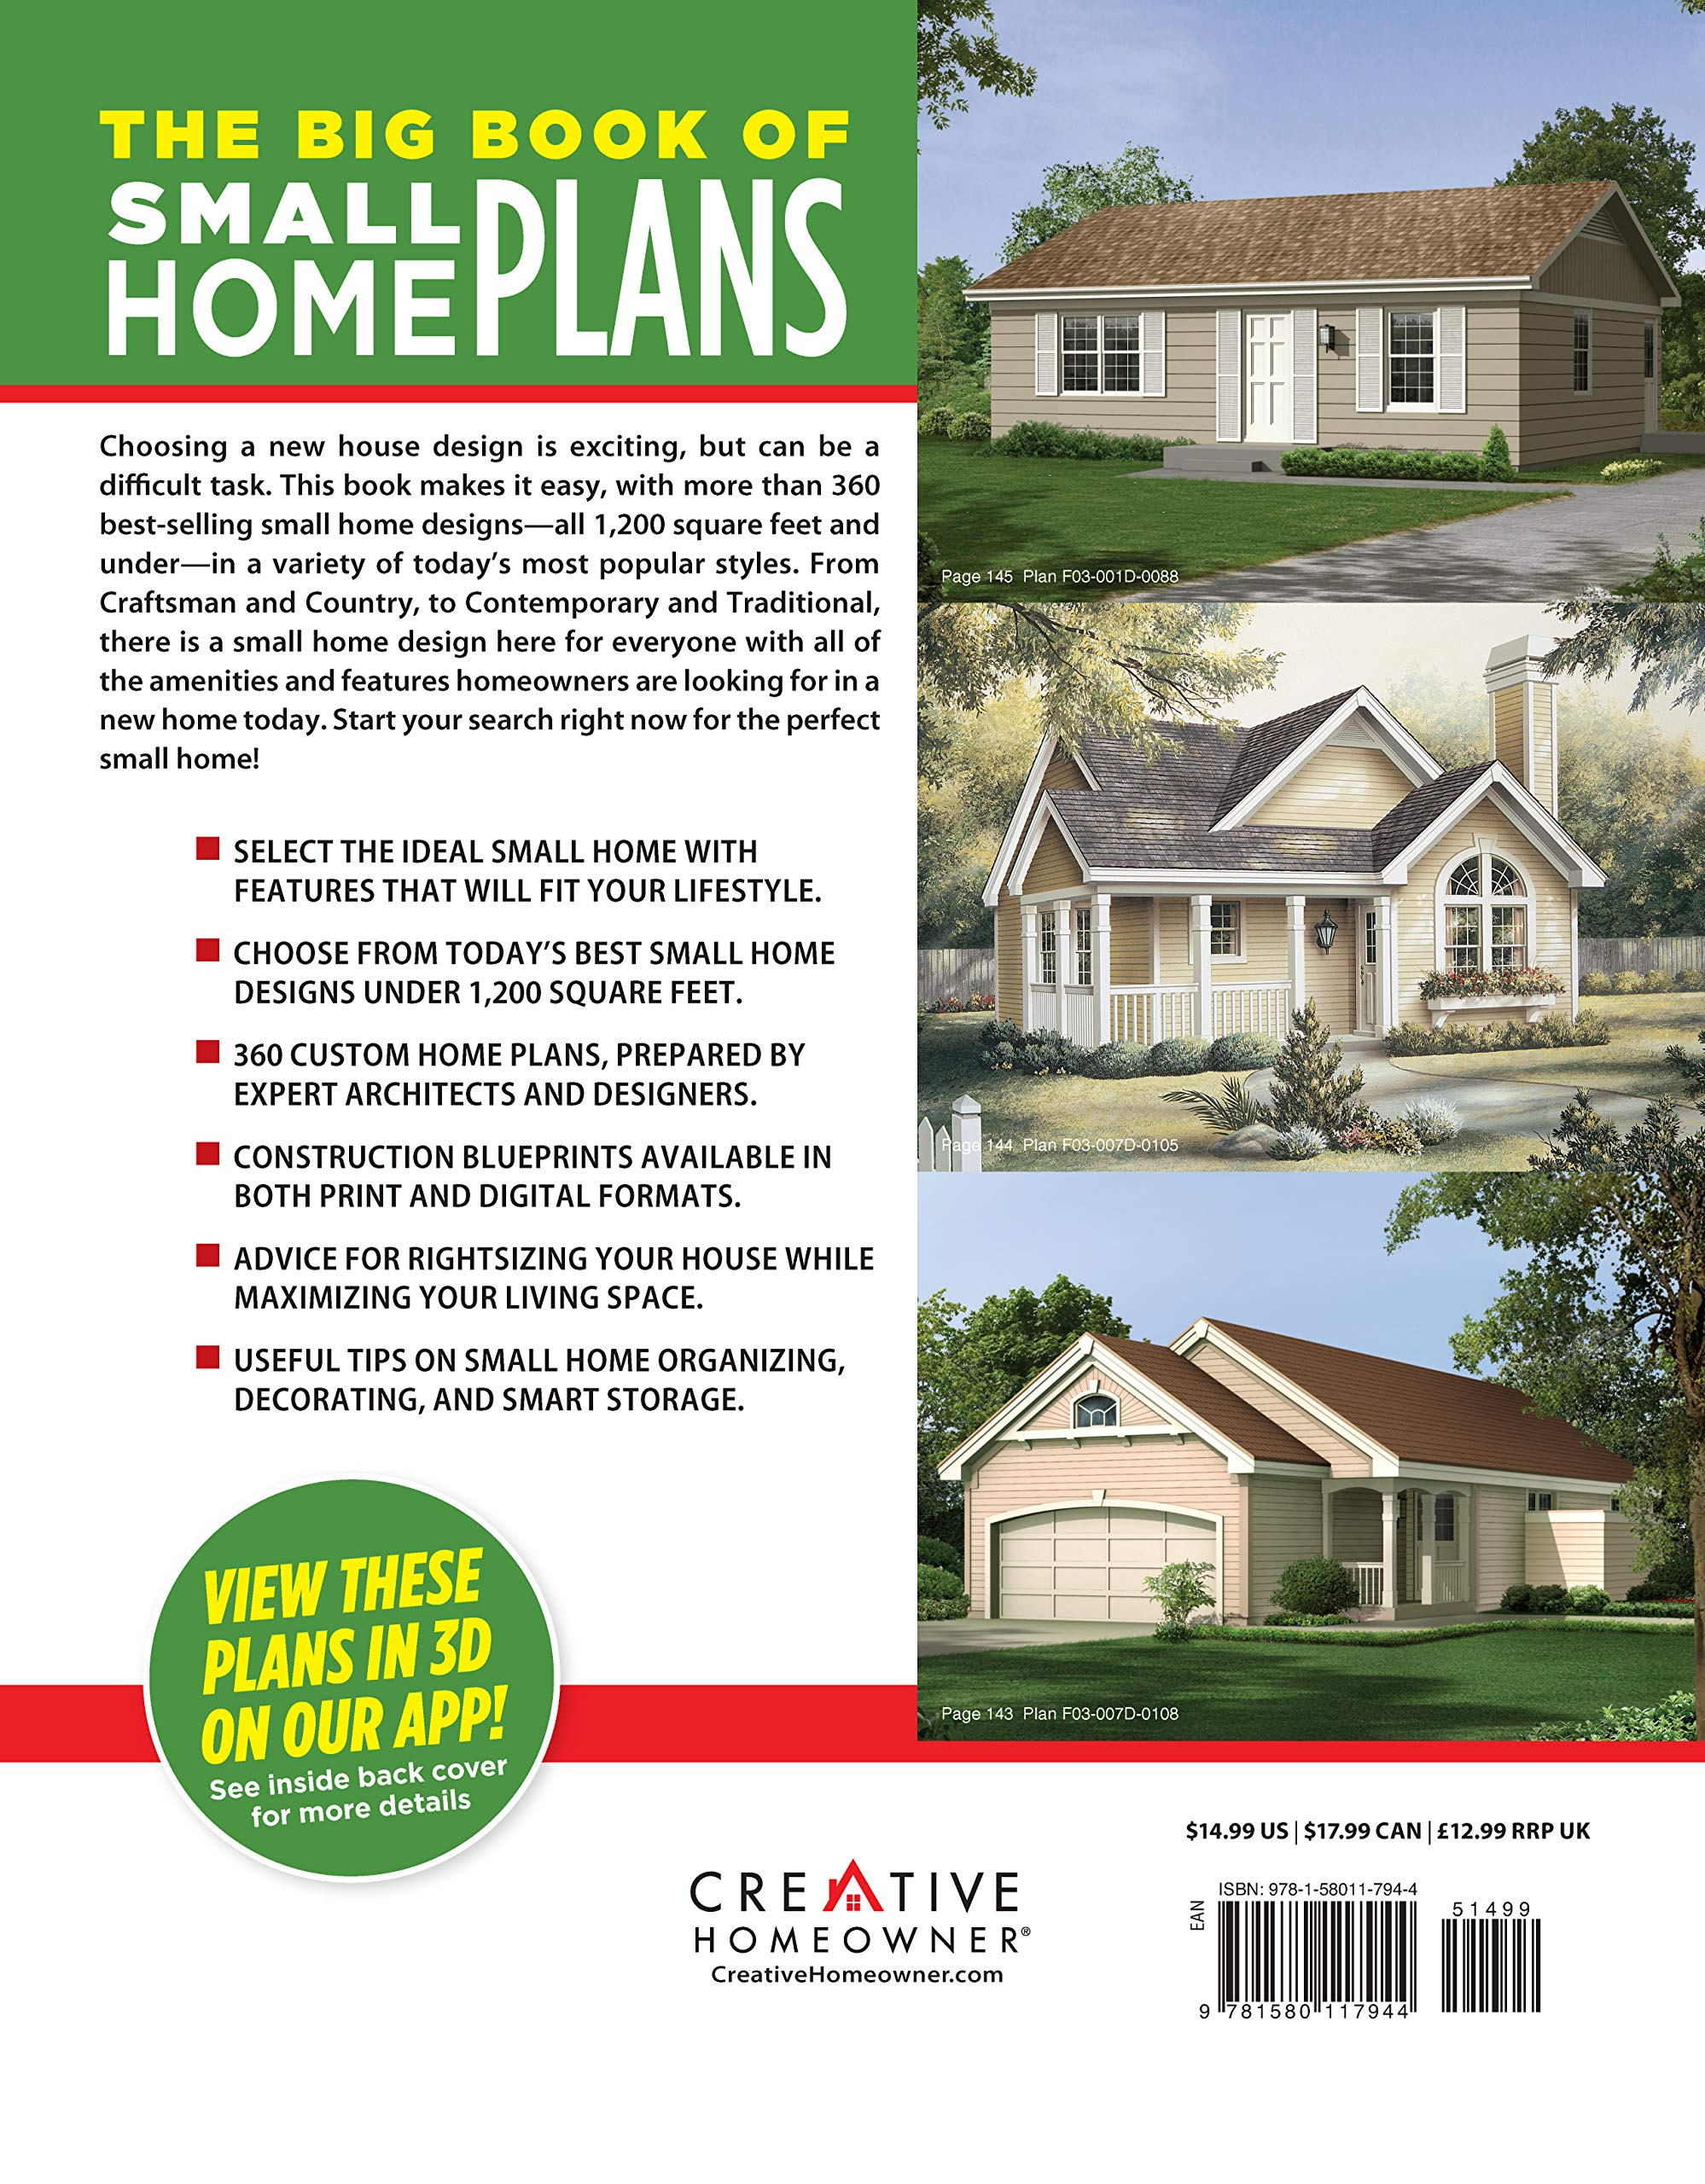 New Small Home Plans Best Of the Big Book Of Small Home Plans Over 360 Home Plans Under